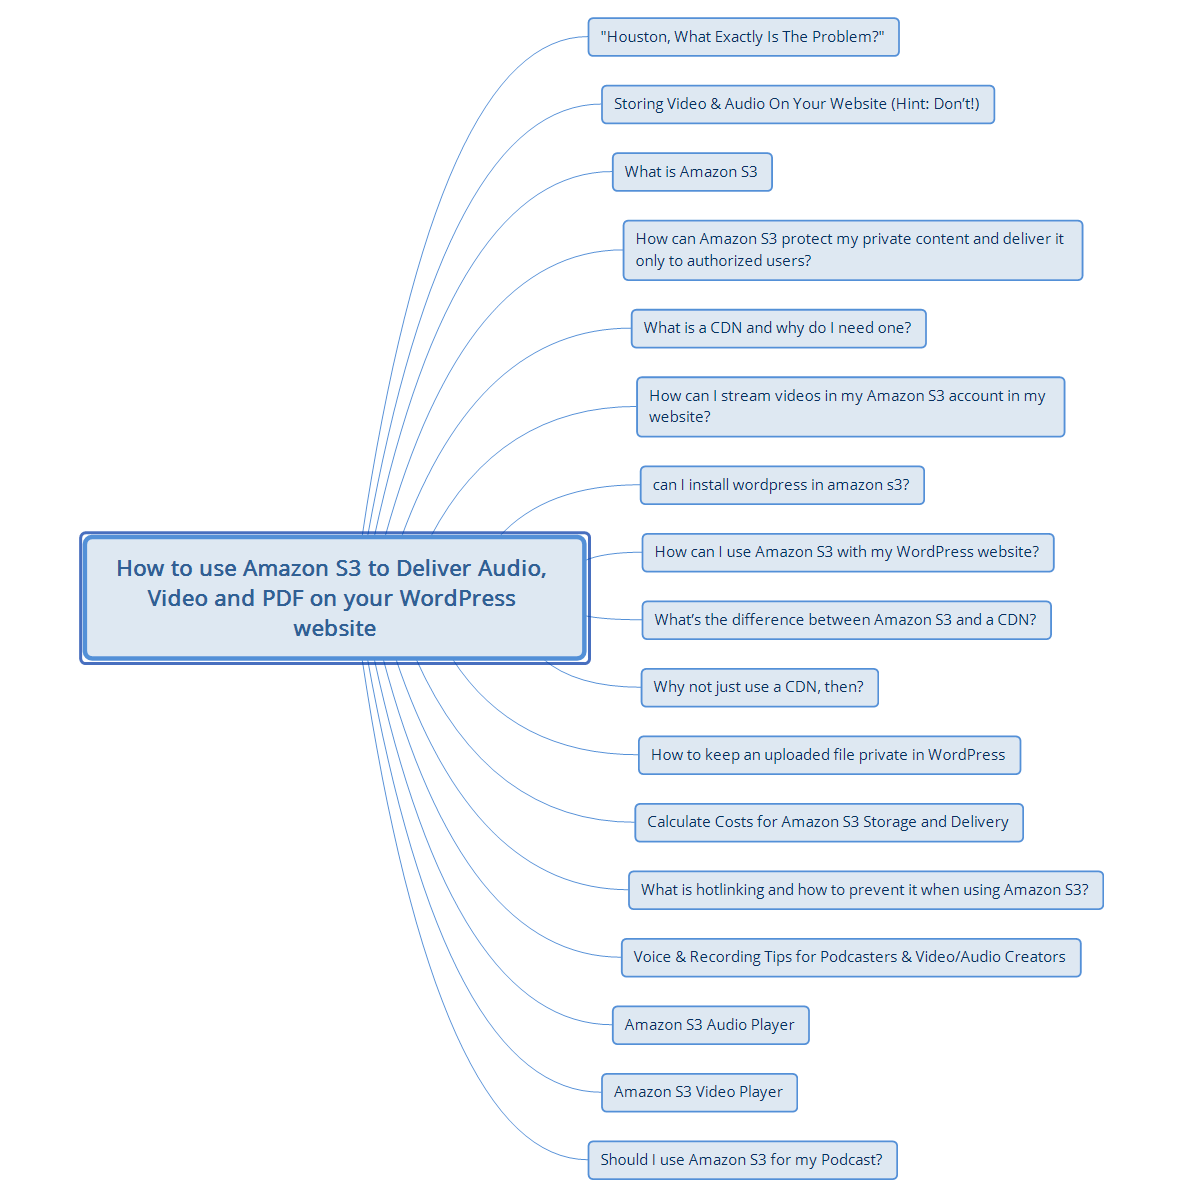 Image above shows planning and brainstorming my article using a Mindmap - I do the same whether it's an online course, Kindle book, WordPress plugin, online business planning, product development or skyscraper post.